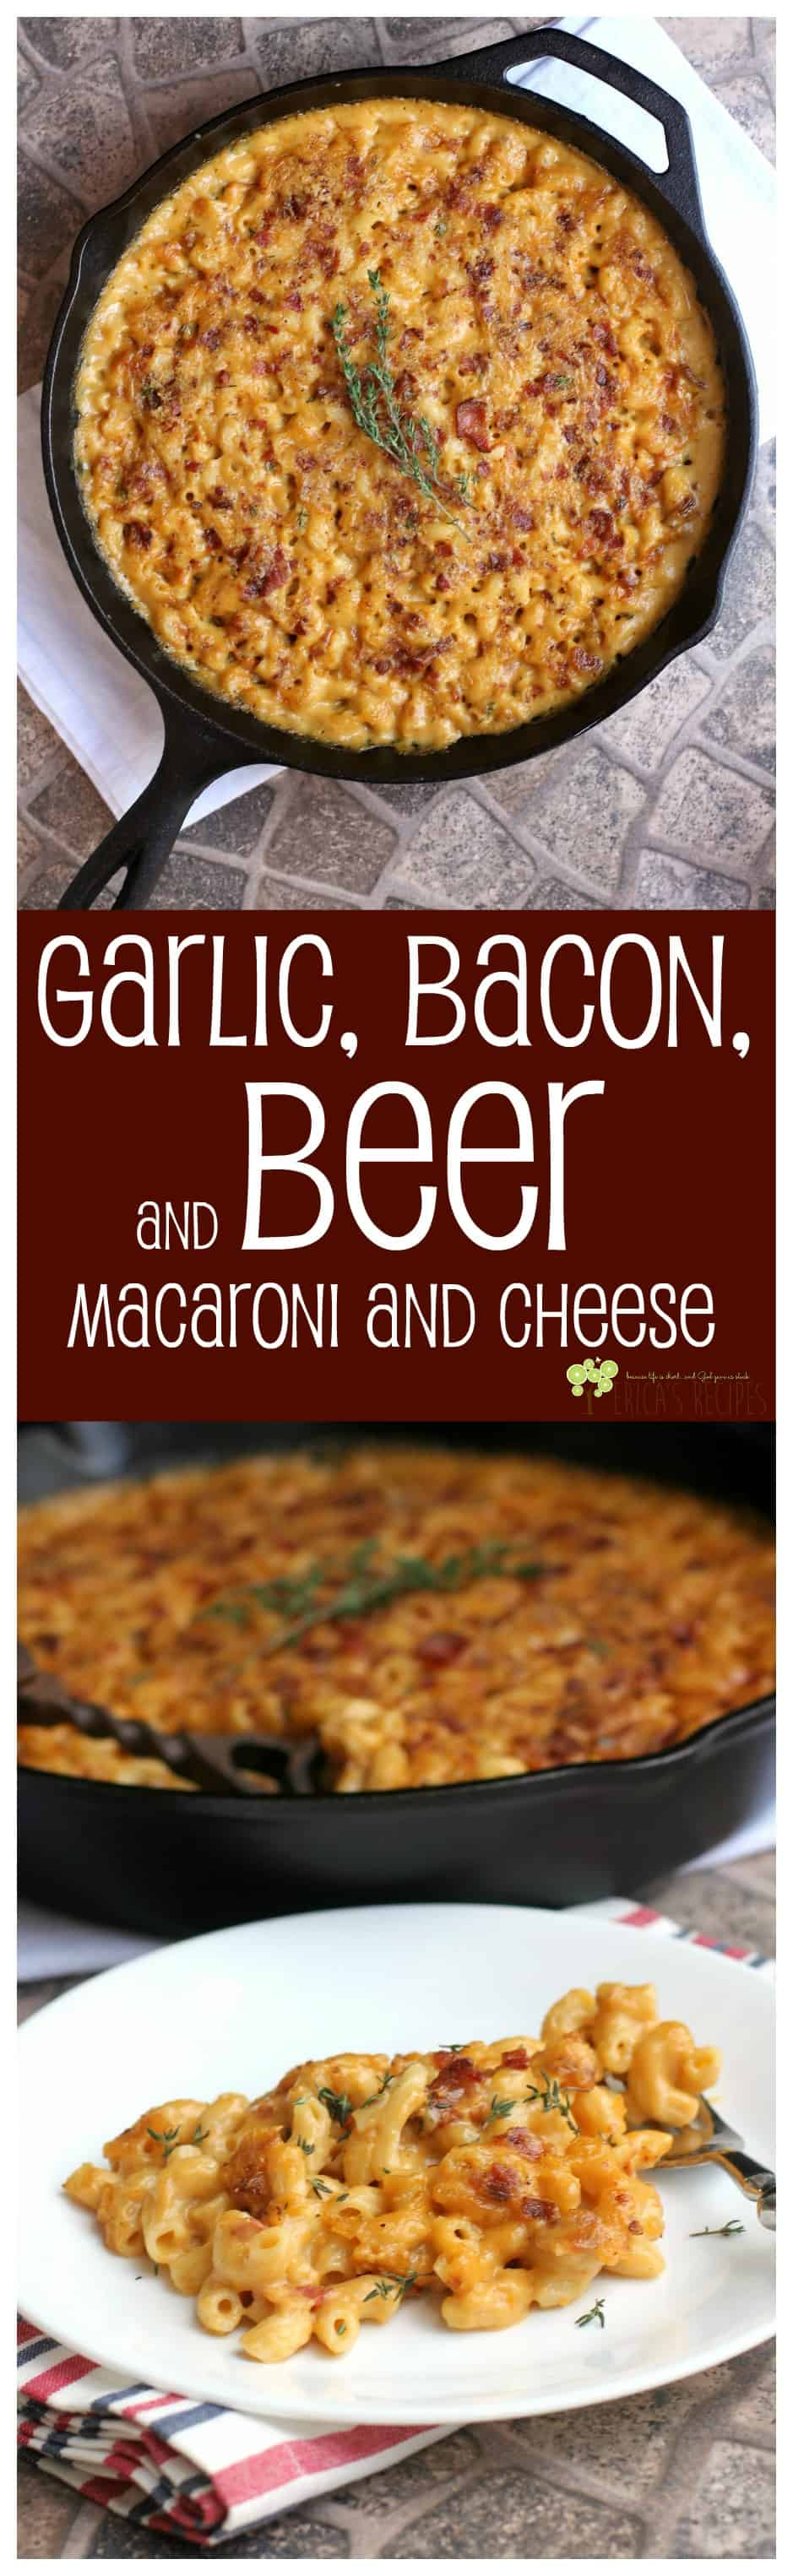 Garlic, Bacon, and Beer Macaroni and Cheese #food #recipe #macaroniandcheese #cheese #garlic #beer